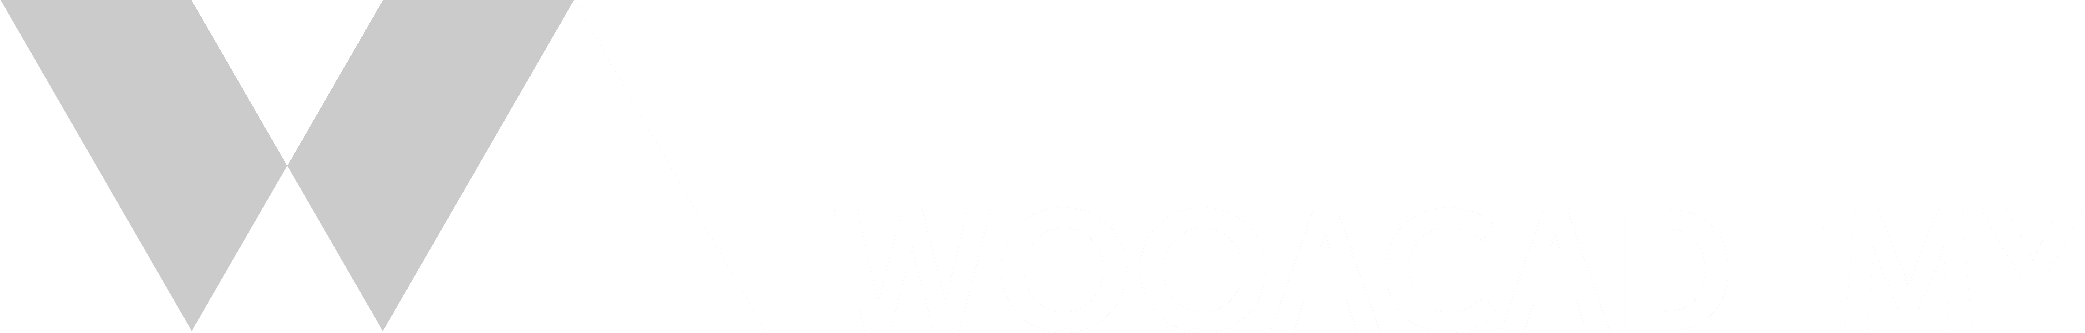 wooacademy logo marketing